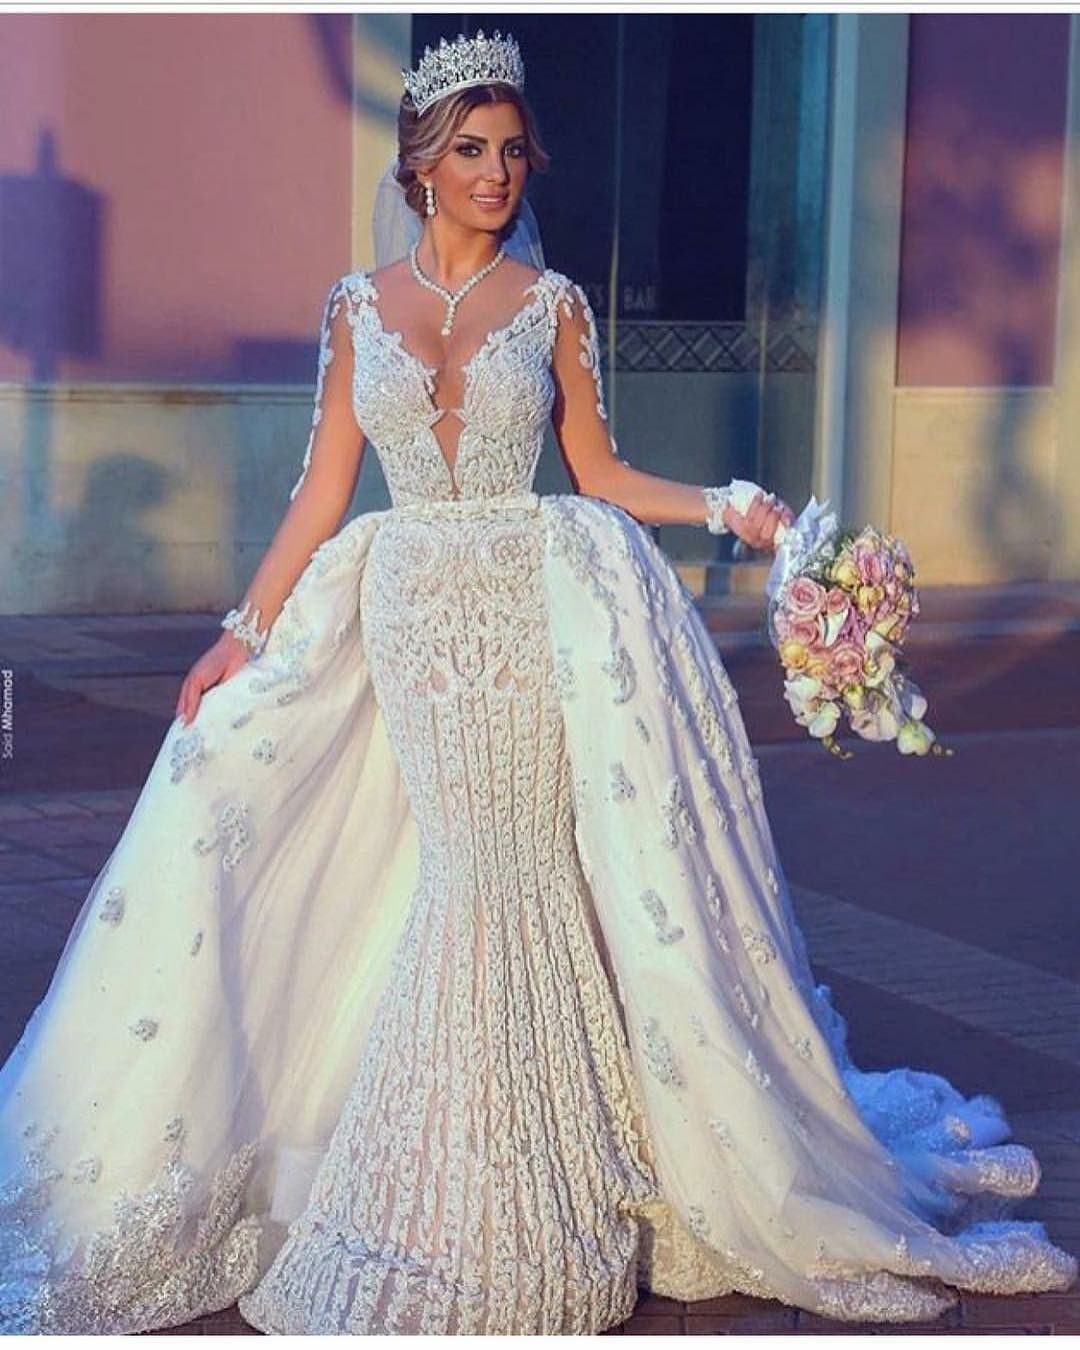 If Haute Couture Wedding Gowns Are Out Your Price Range You May Want To Consider